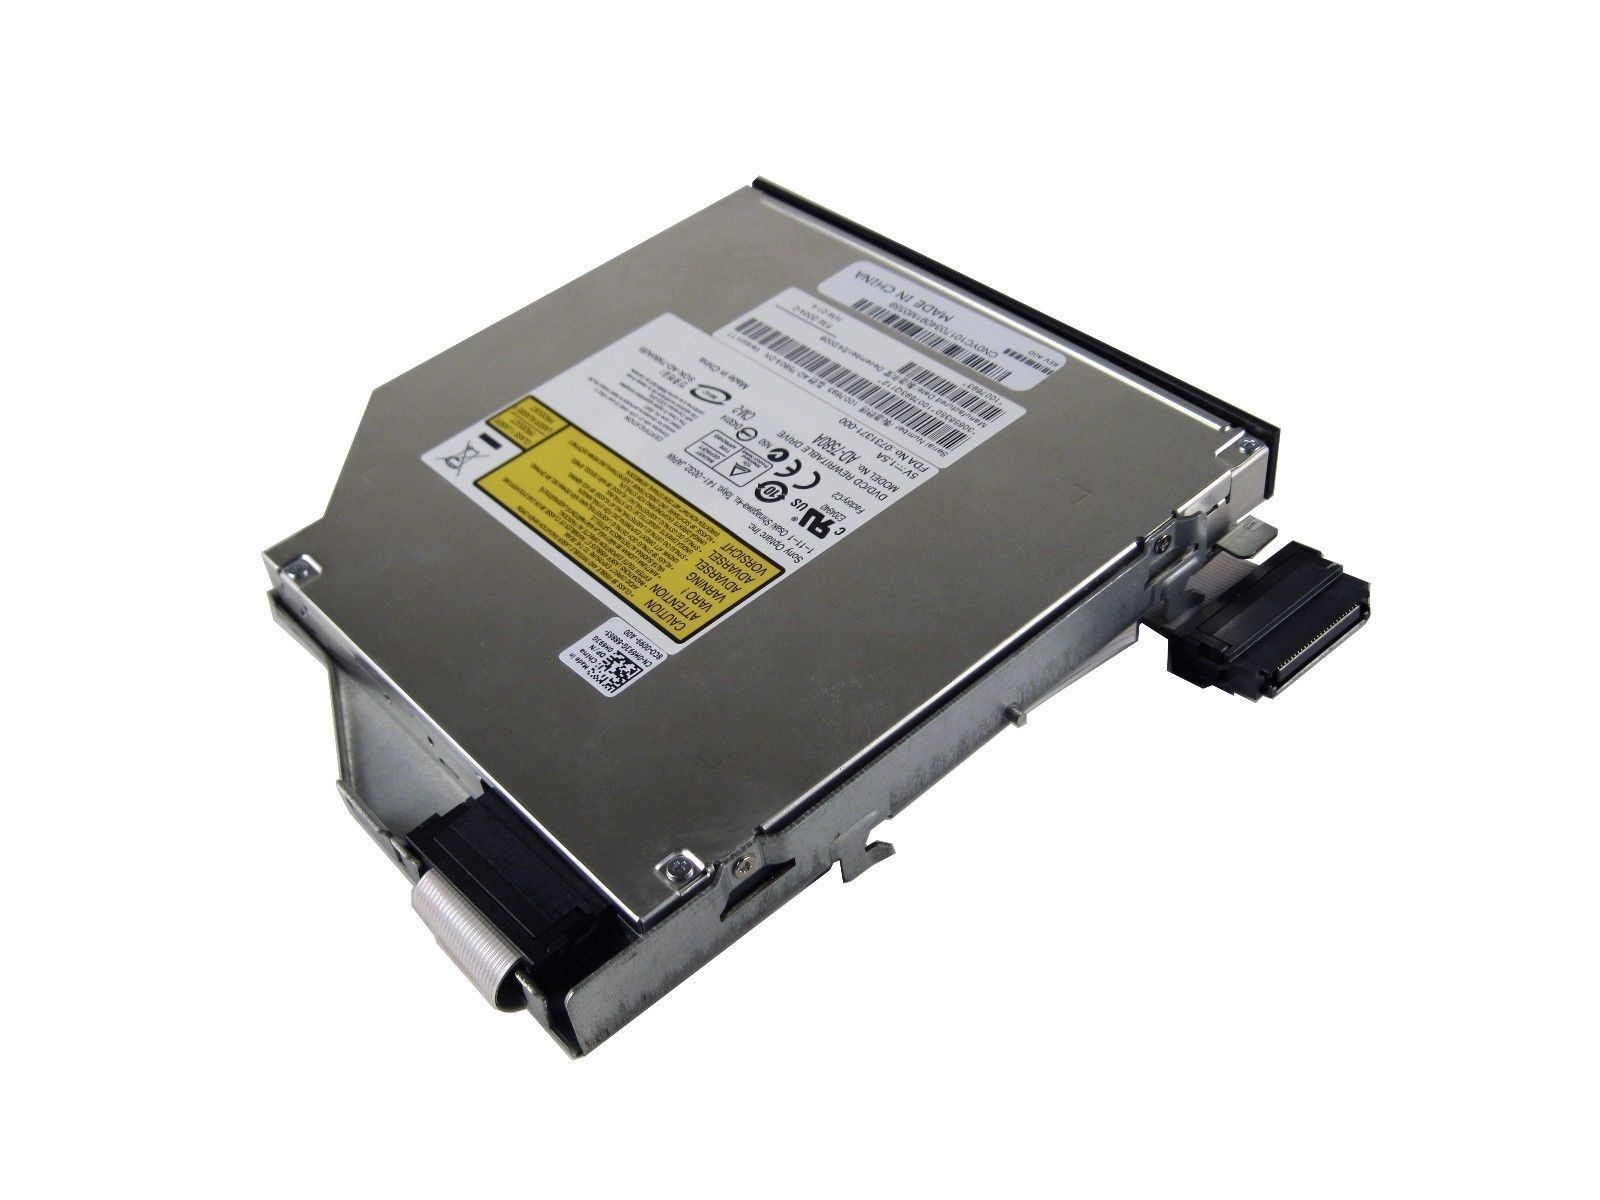 Dell H693G DVD+/-RW 8x SFF IDE Optical Drive AD-7580A